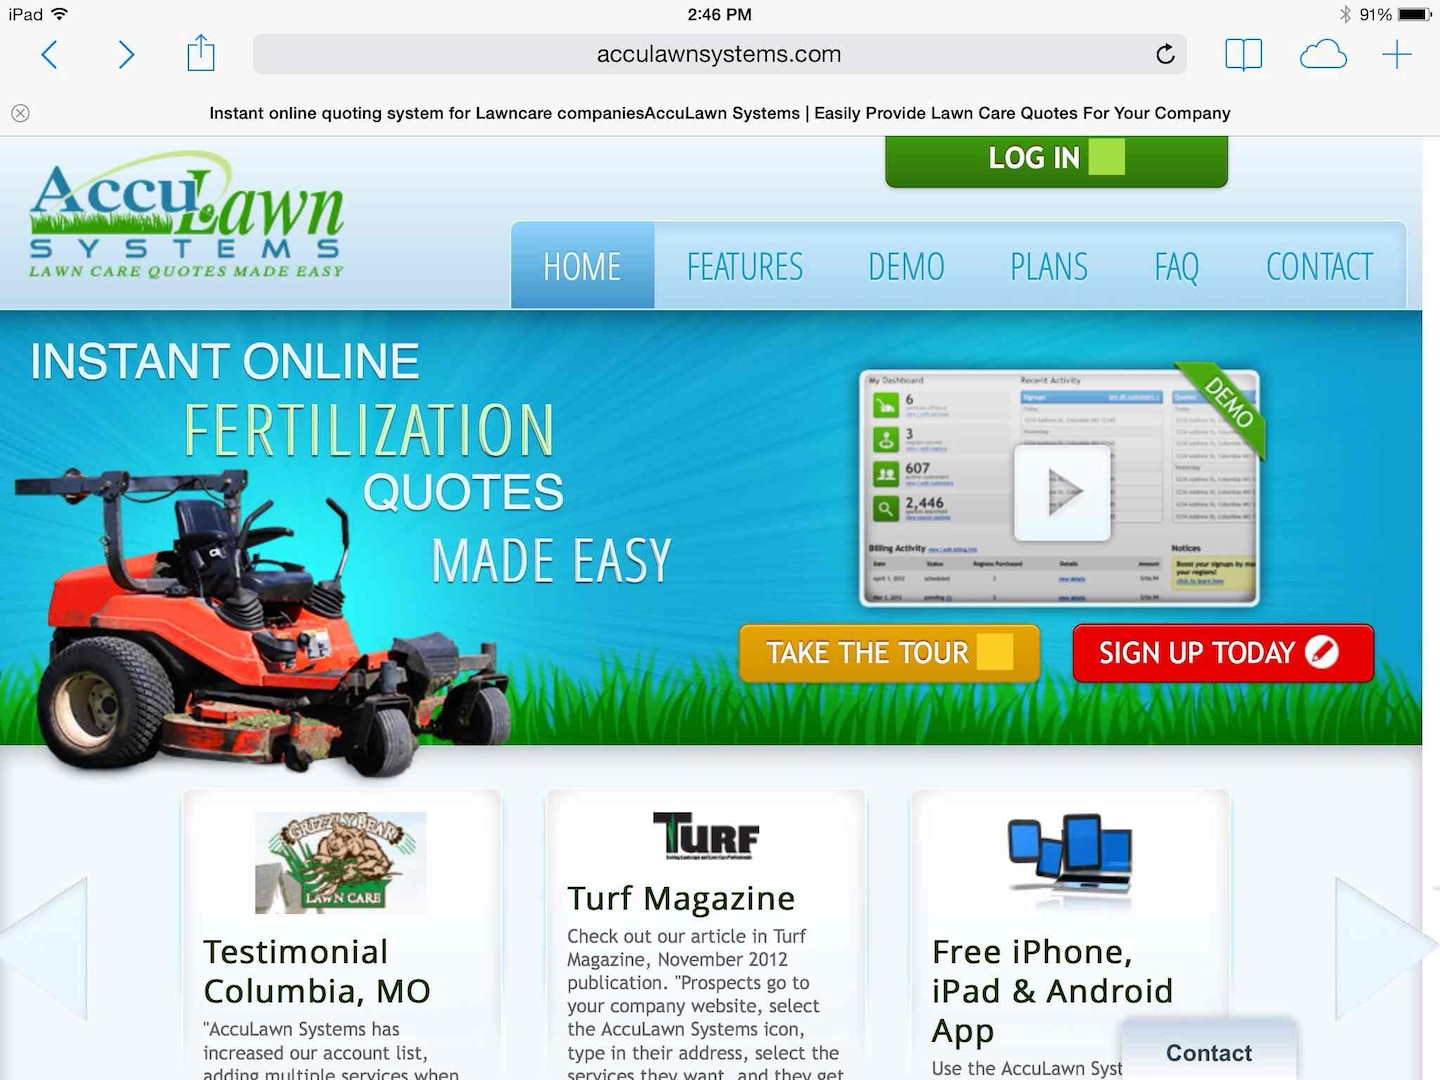 AccuLawnCare.com